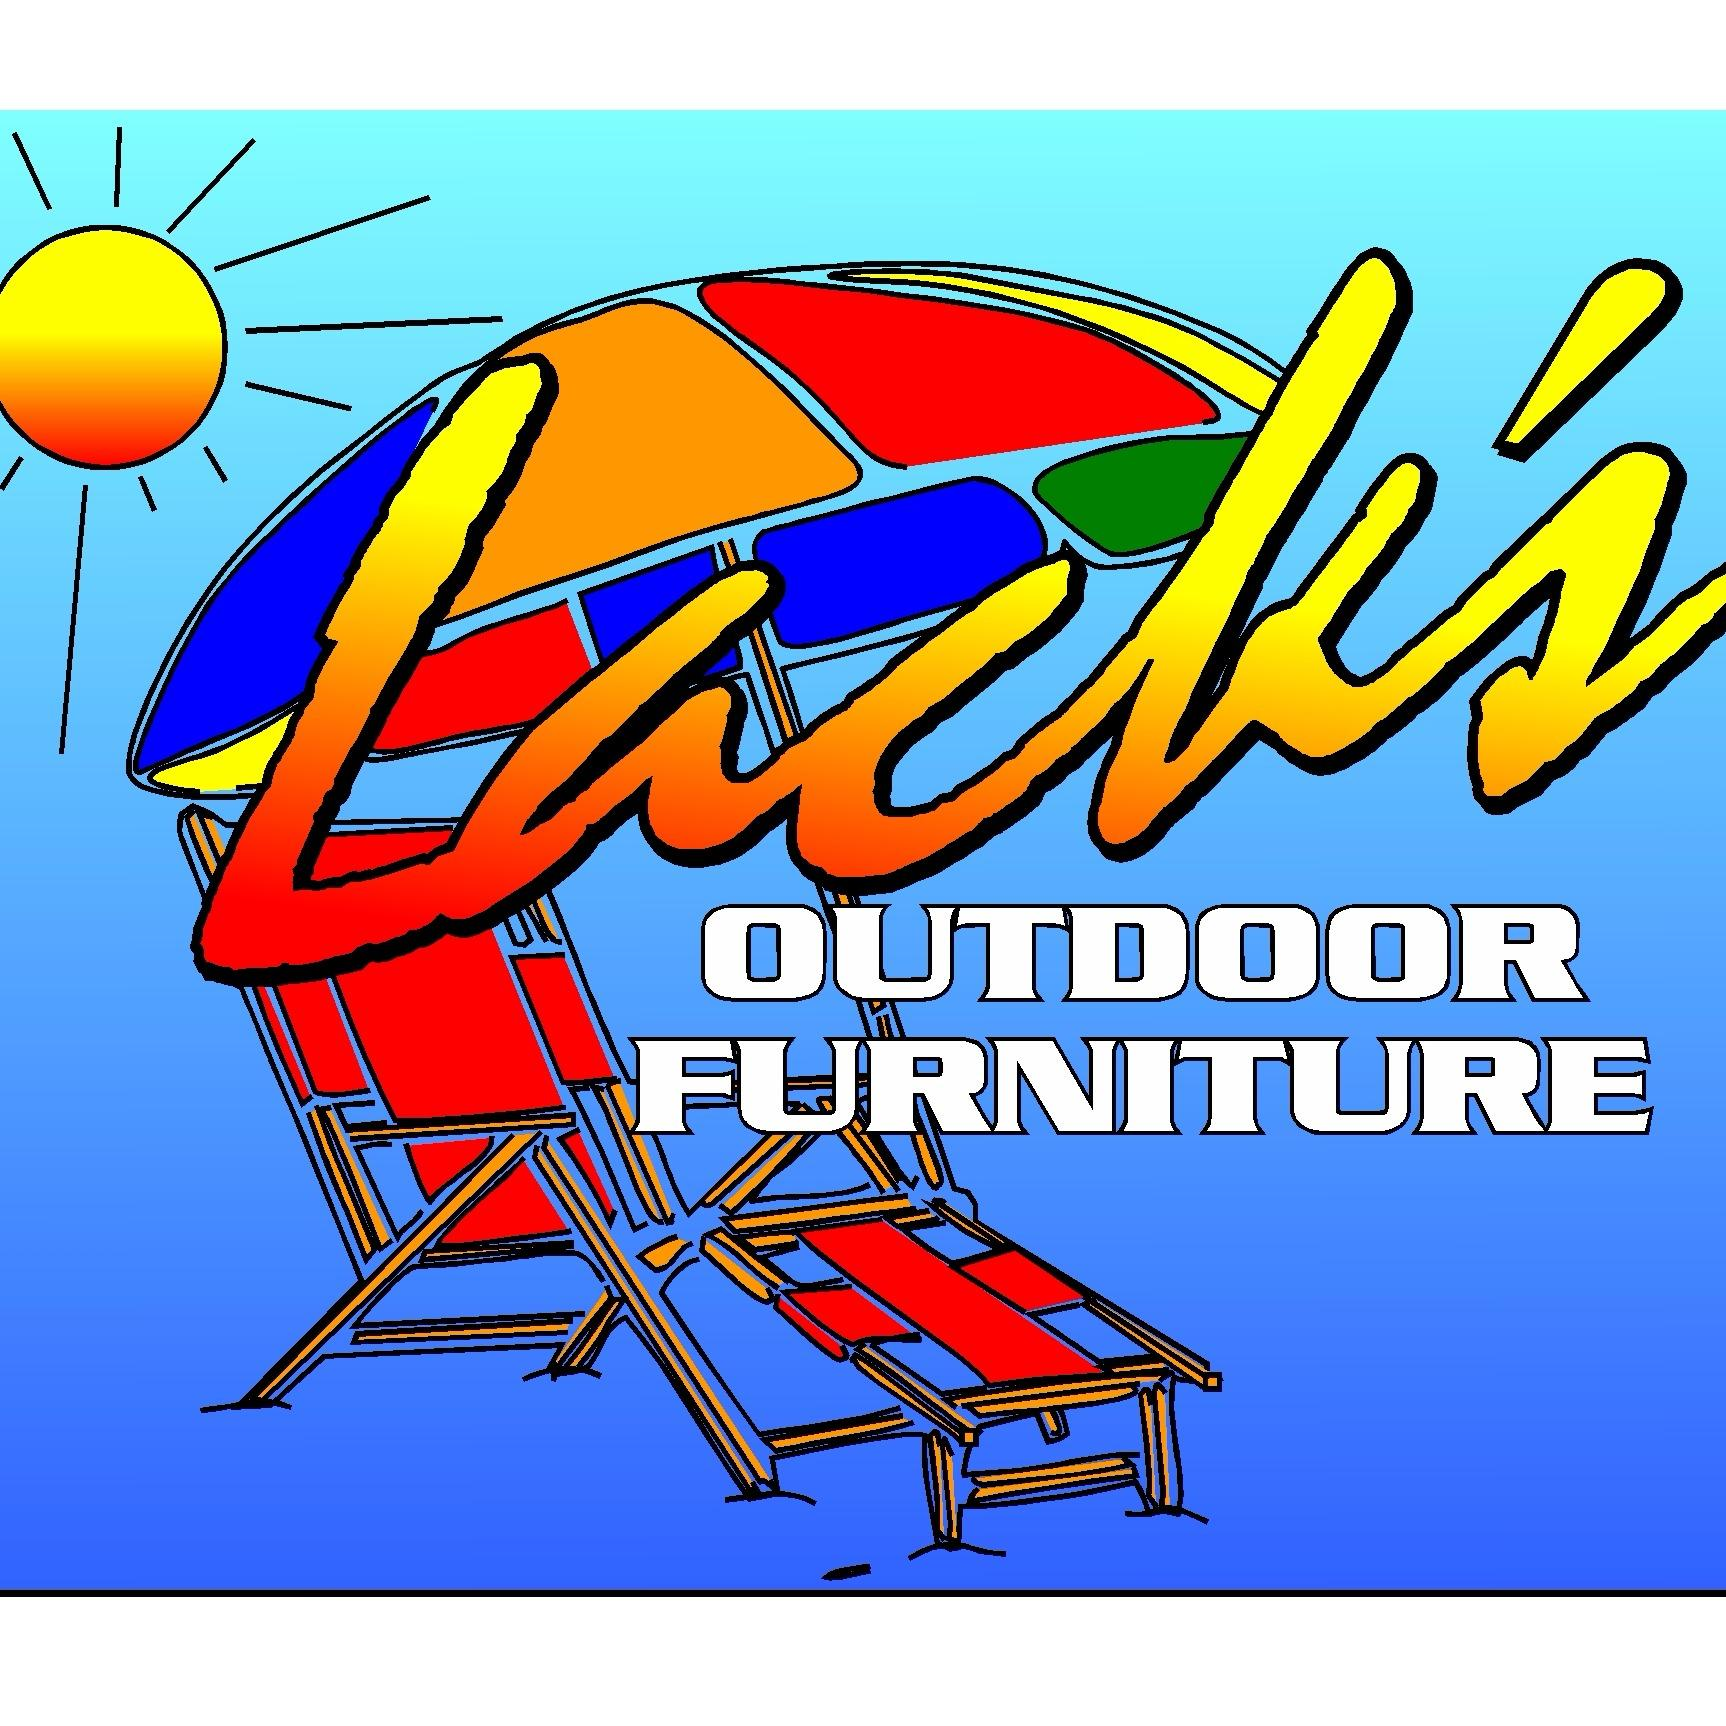 Lacks Outdoor Furniture In Myrtle Beach Sc Furniture Outdoor Yellow Pages Directory Inc